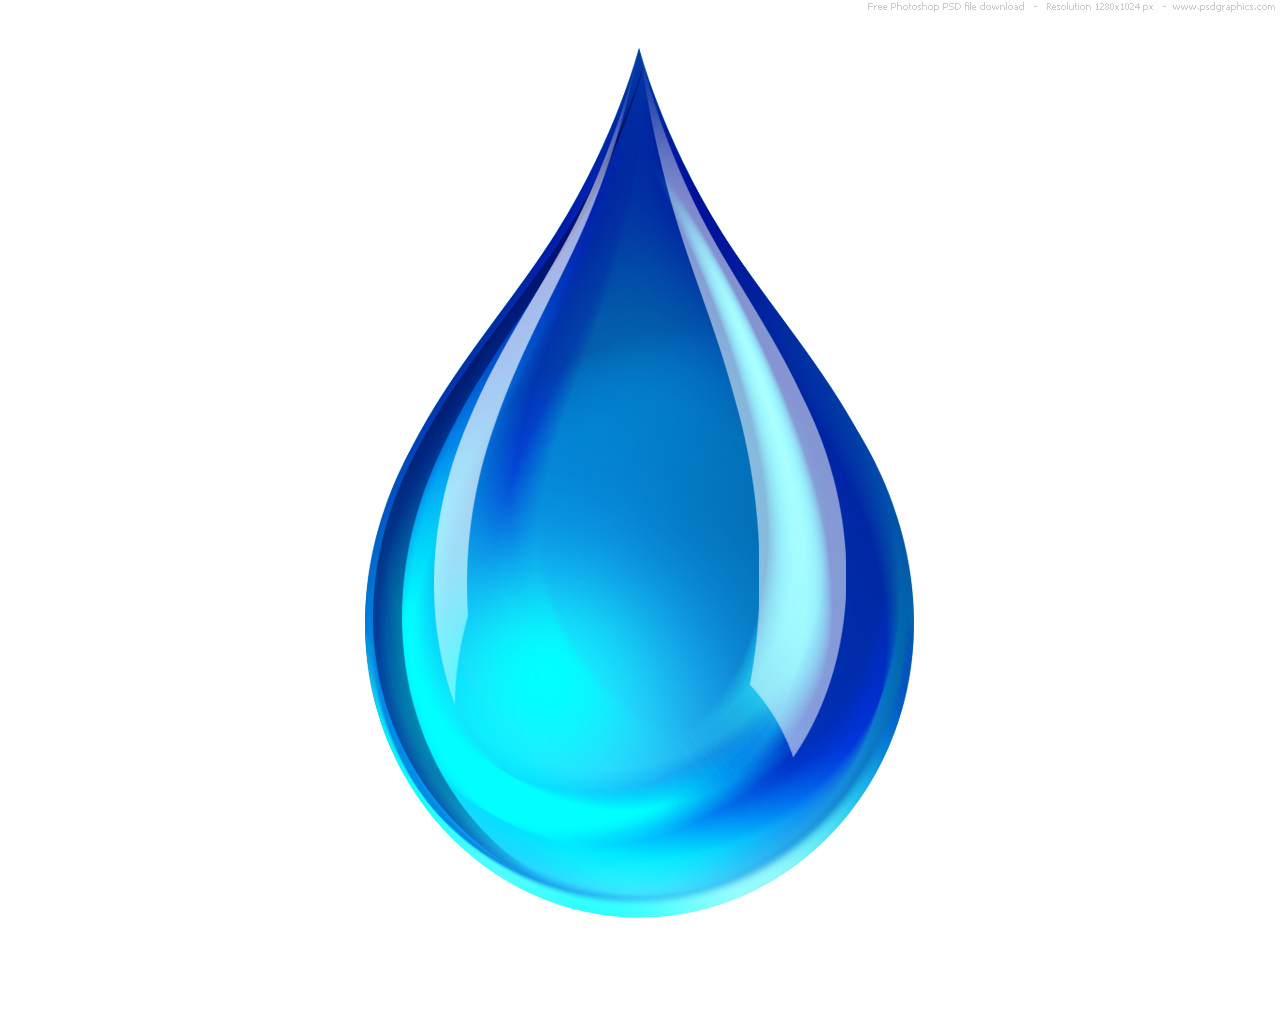 Water Drop Clipart - ClipArt Best